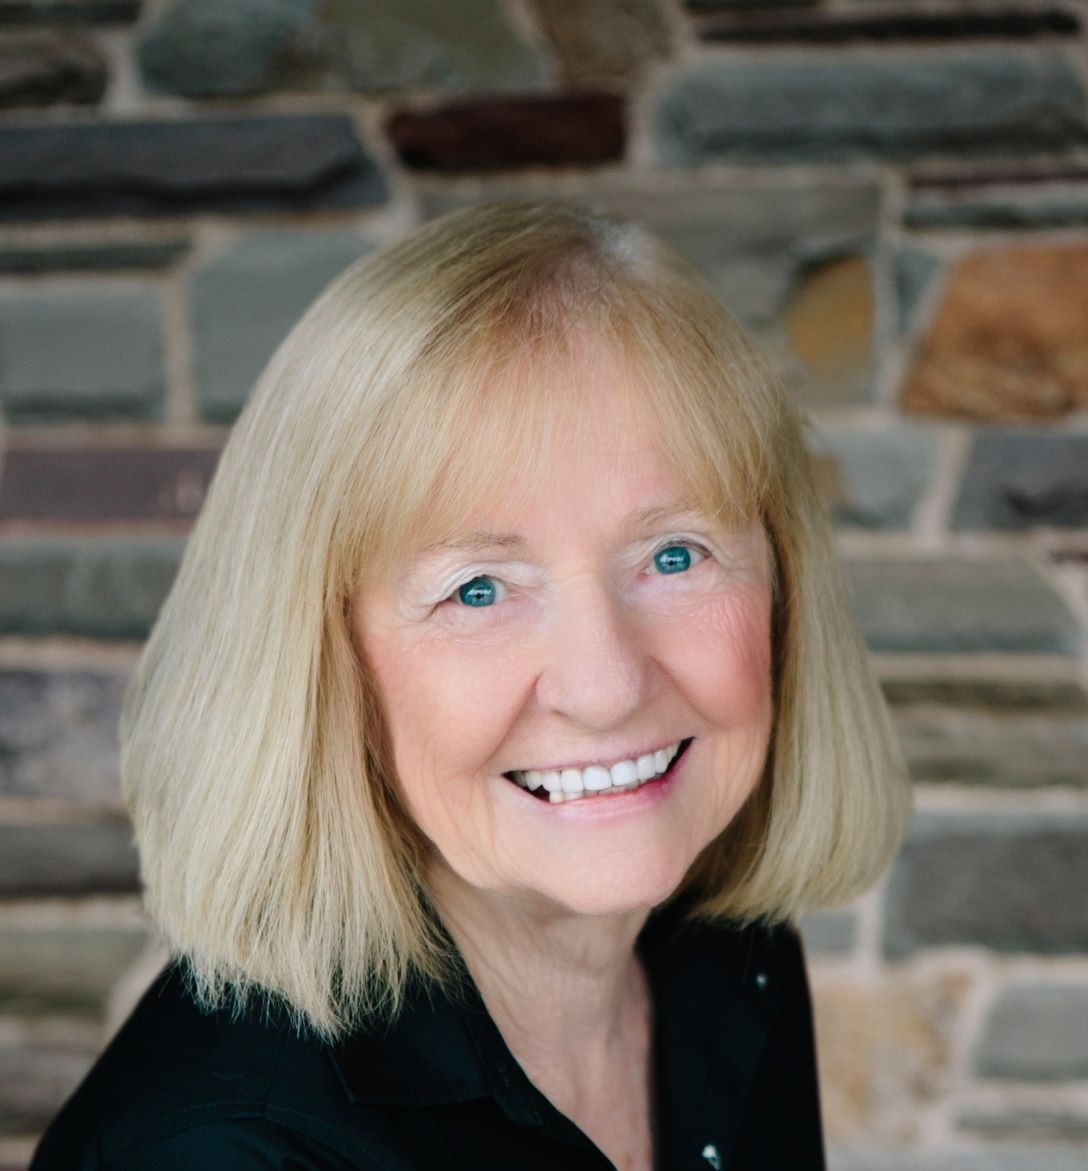 Announcing our June Agent of the Month, Kathleen (Pat) Strong!